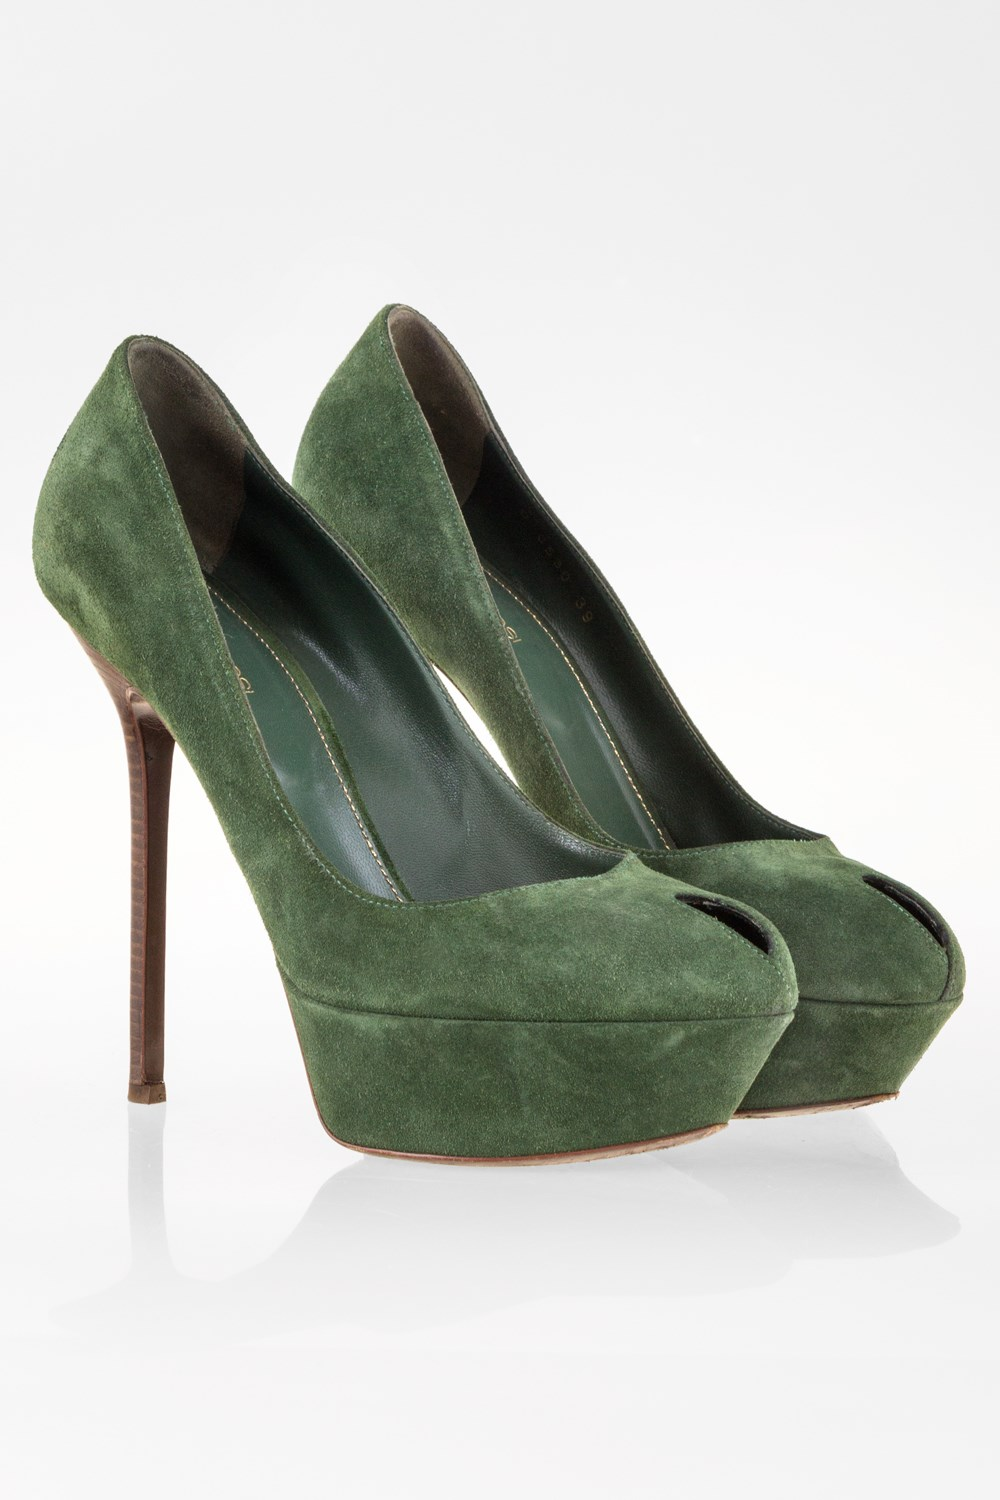 4ce4437db92 Forest Green Suede Pumps with Wooden Heel   Size  39 - Fit  True to ...